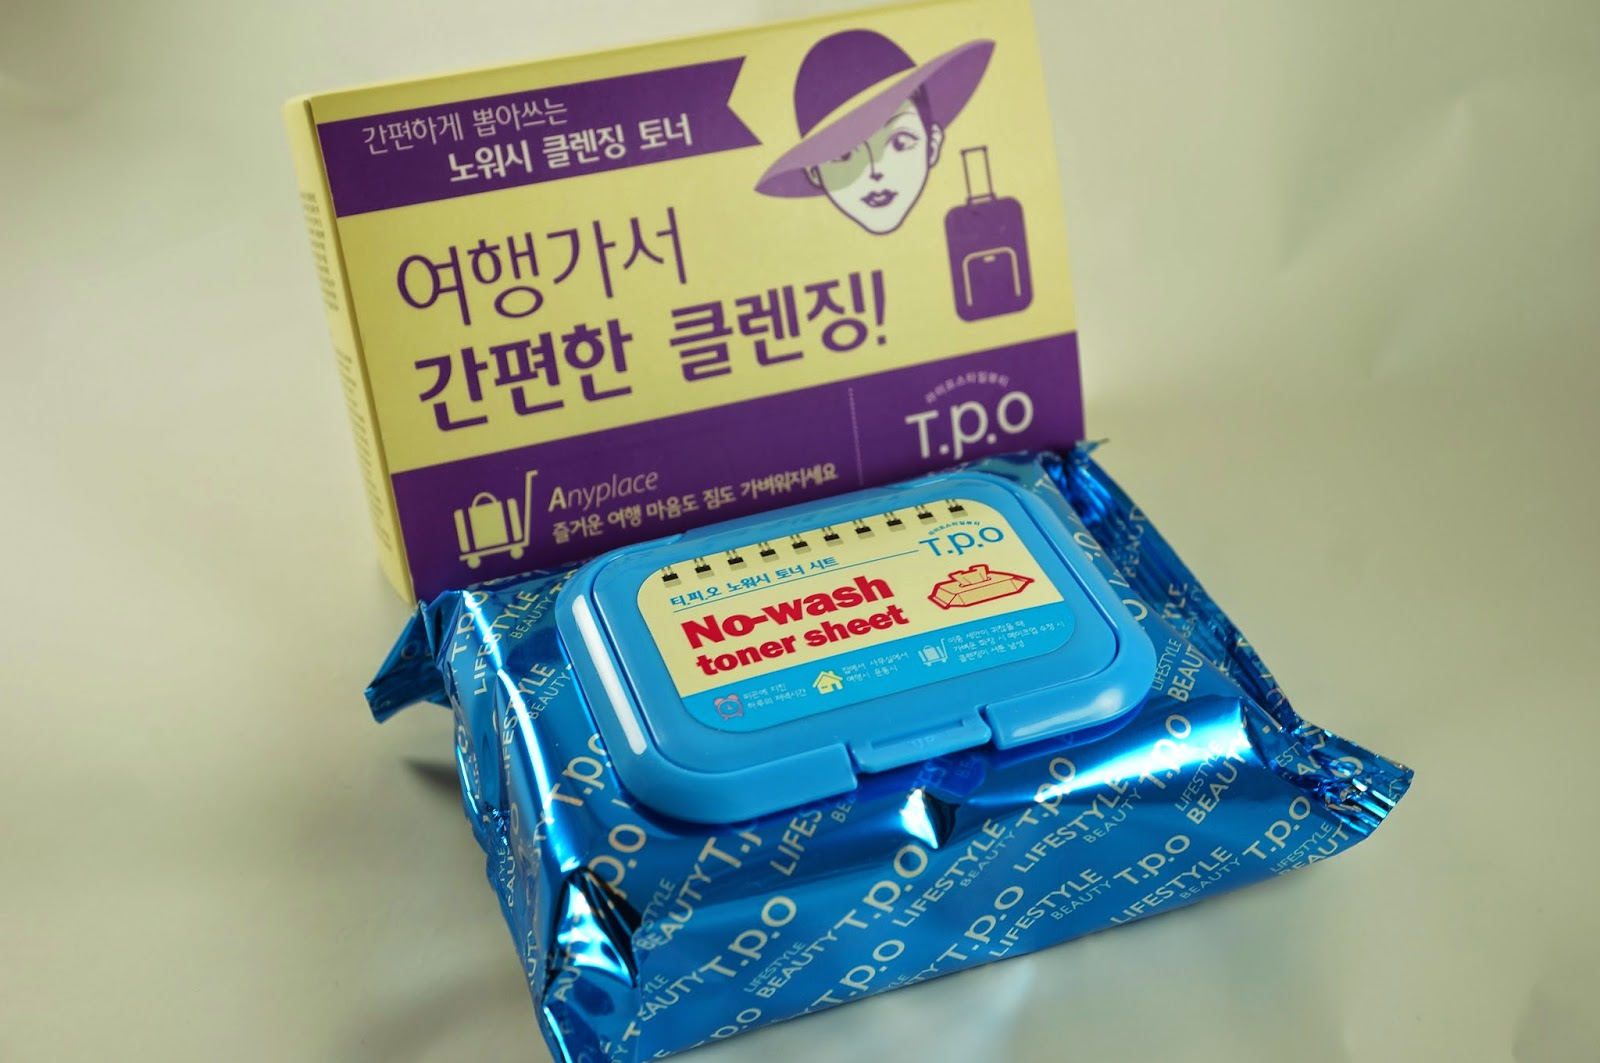 Memebox #25 Traveller's Traveler's Beauty Kit Unboxing Review T.P.O. TPO No-Wash No Wash Toner Sheet Cleansing Wipe